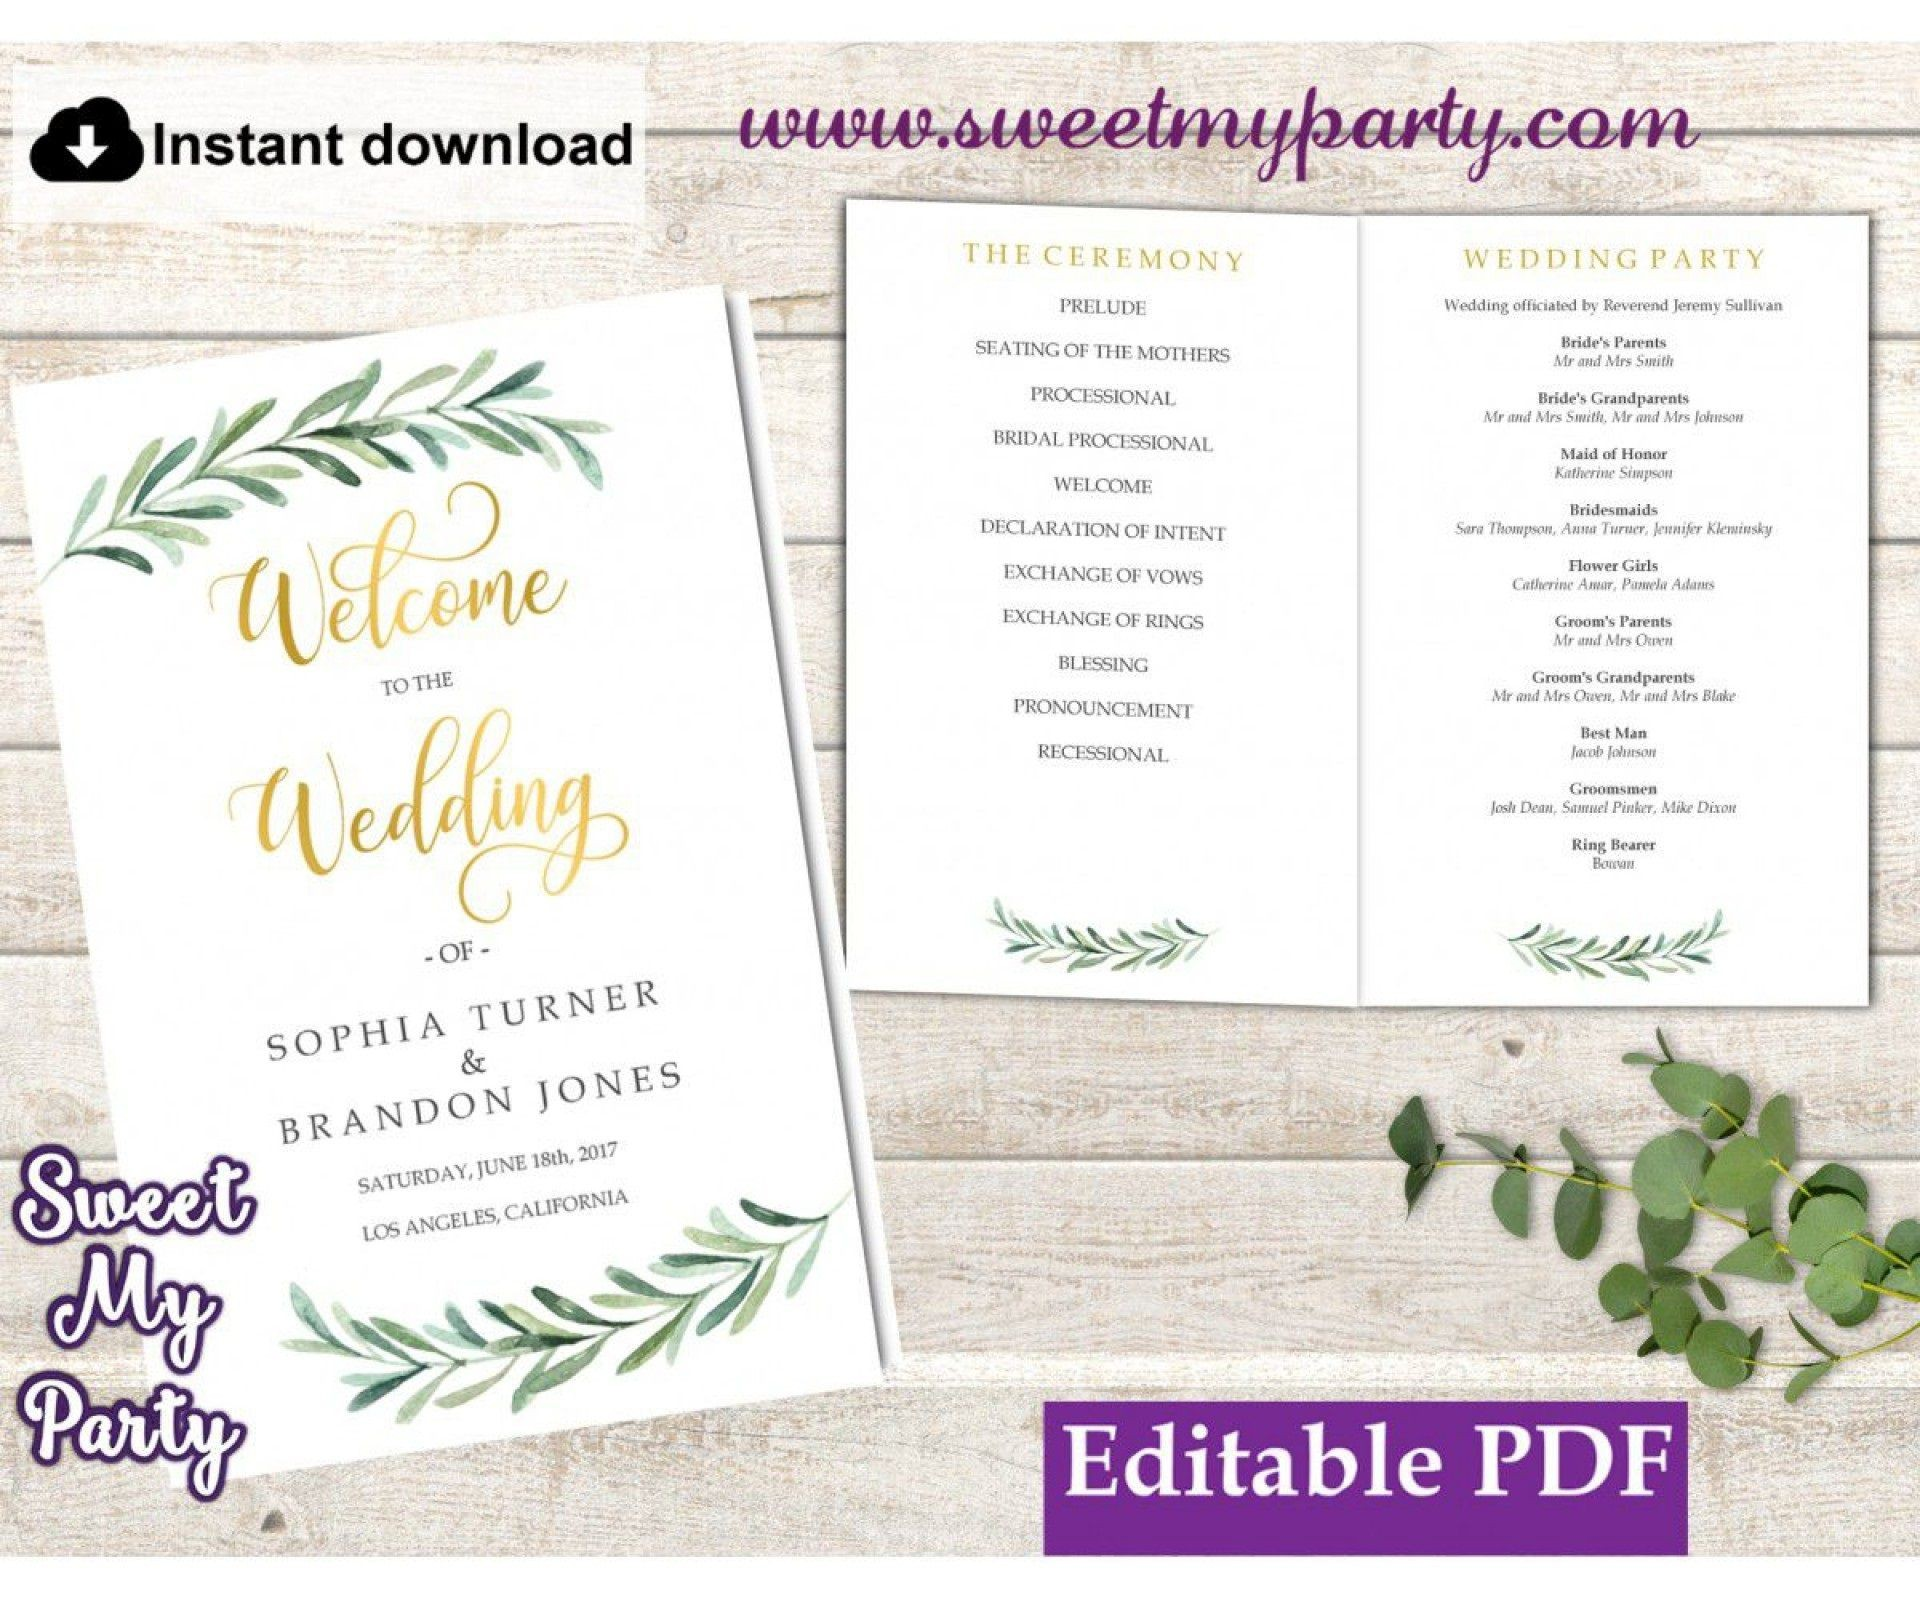 009 Simple Wedding Order Of Service Template Free High Definition  Front Cover Download Church1920